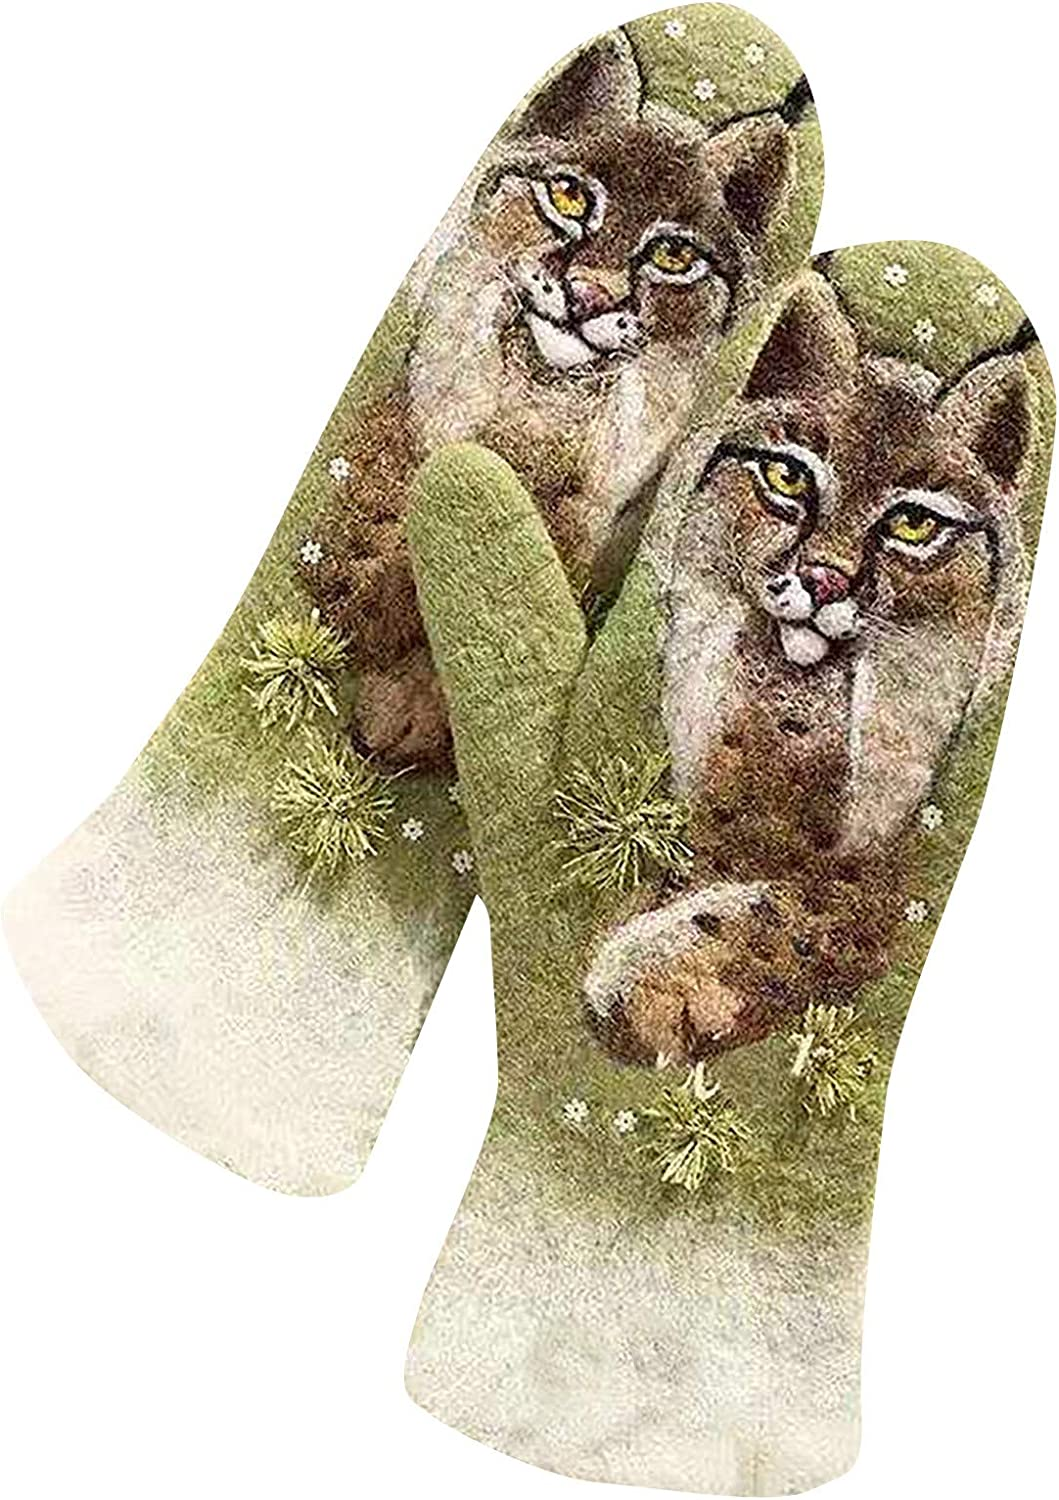 Women's Cashmere Padded Color Matching Animal Print Winter Warm Gloves Fashion/Prom/Warm/Bicycle Gloves